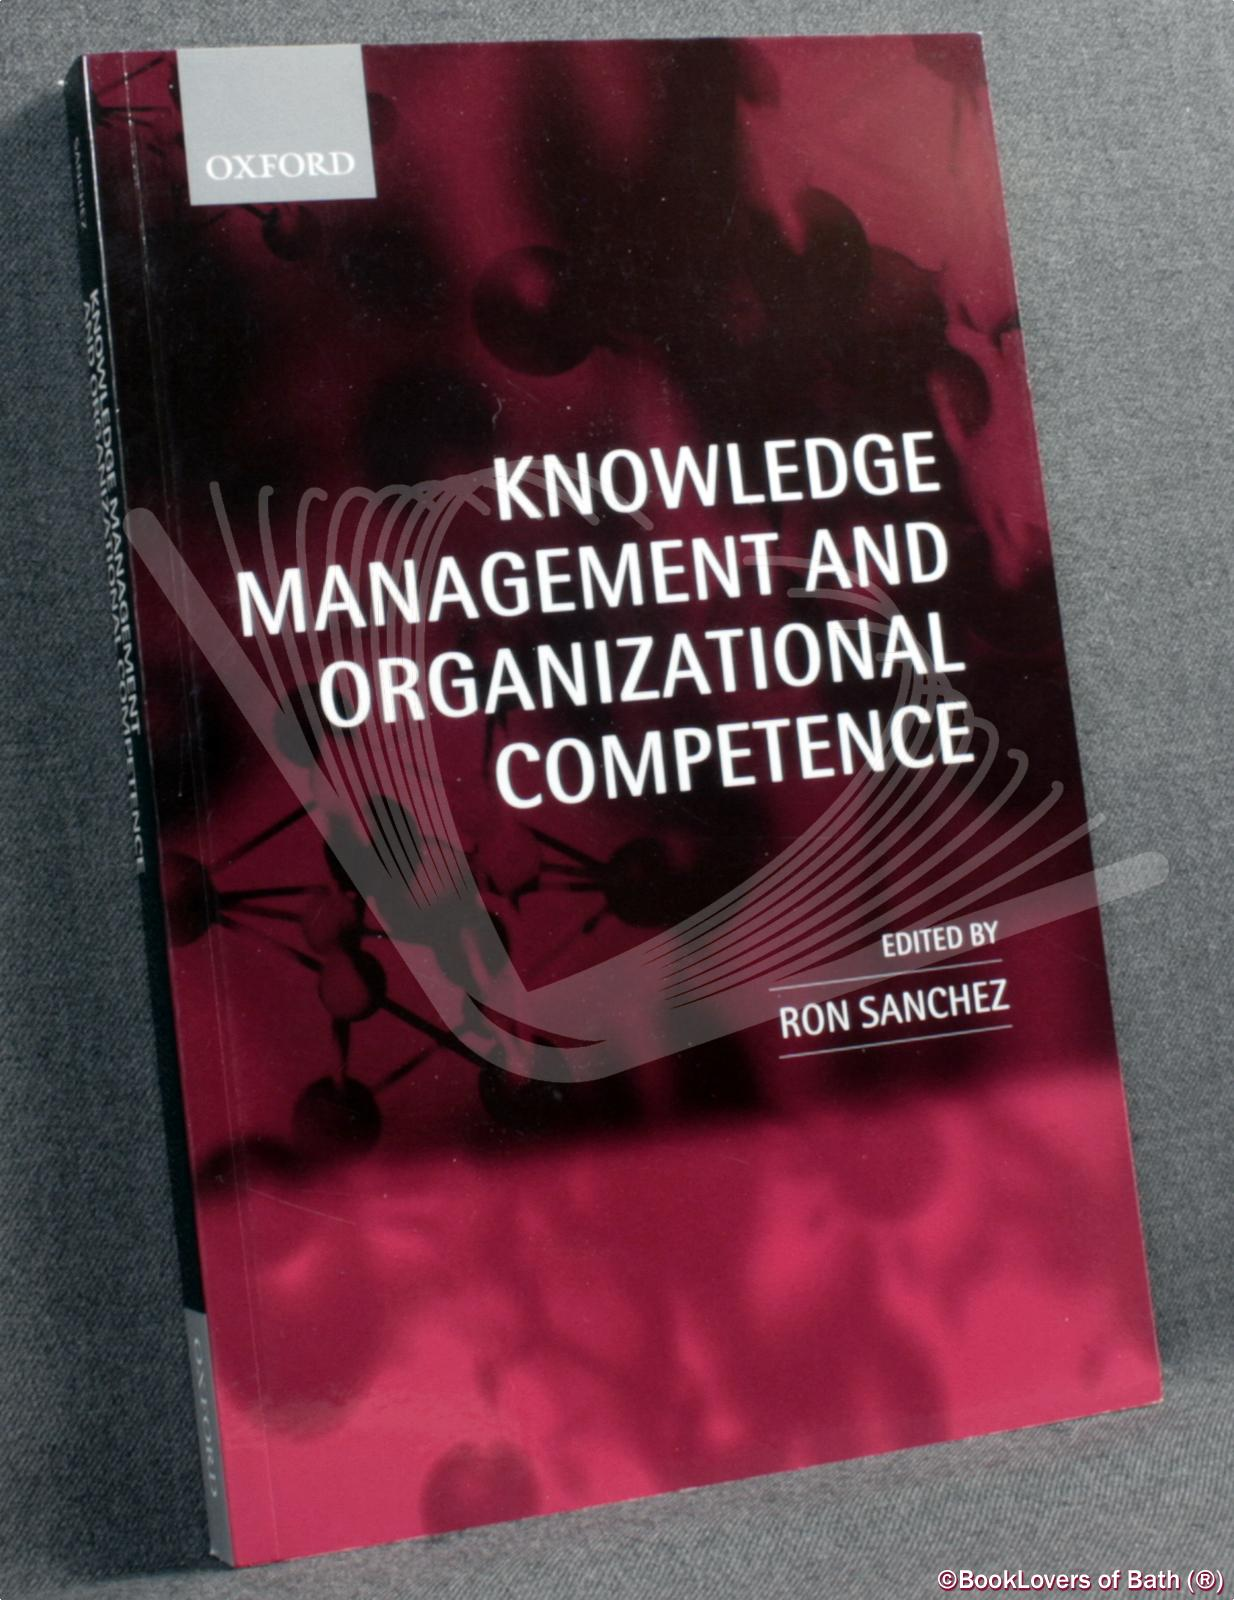 Knowledge Management and Organizational Competence - Edited by Ron Sanchez